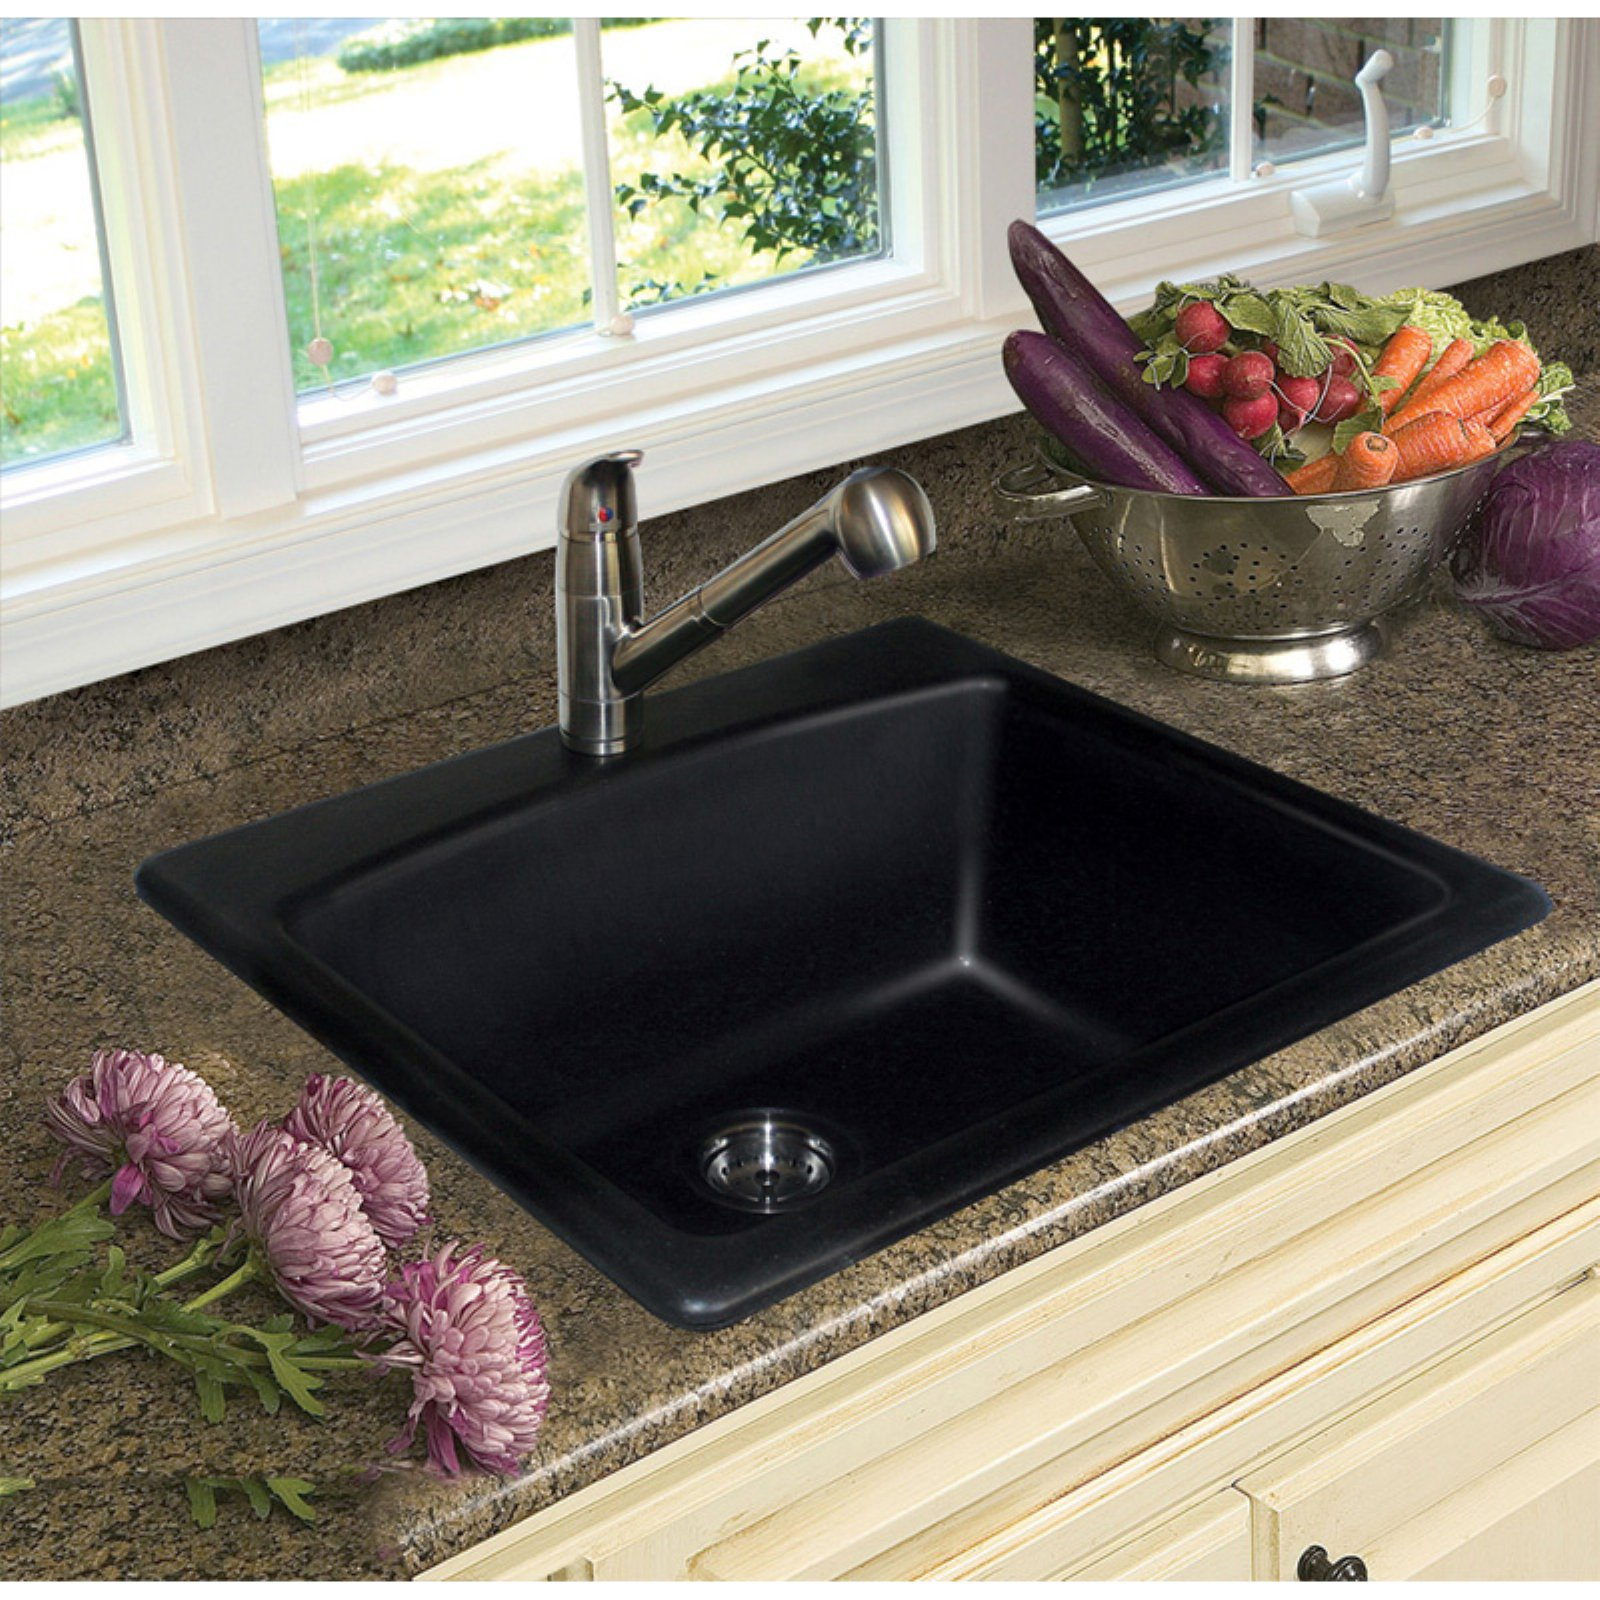 Foghorn Press ESOX25229-1 Single Basin Topmount Kitchen Sink